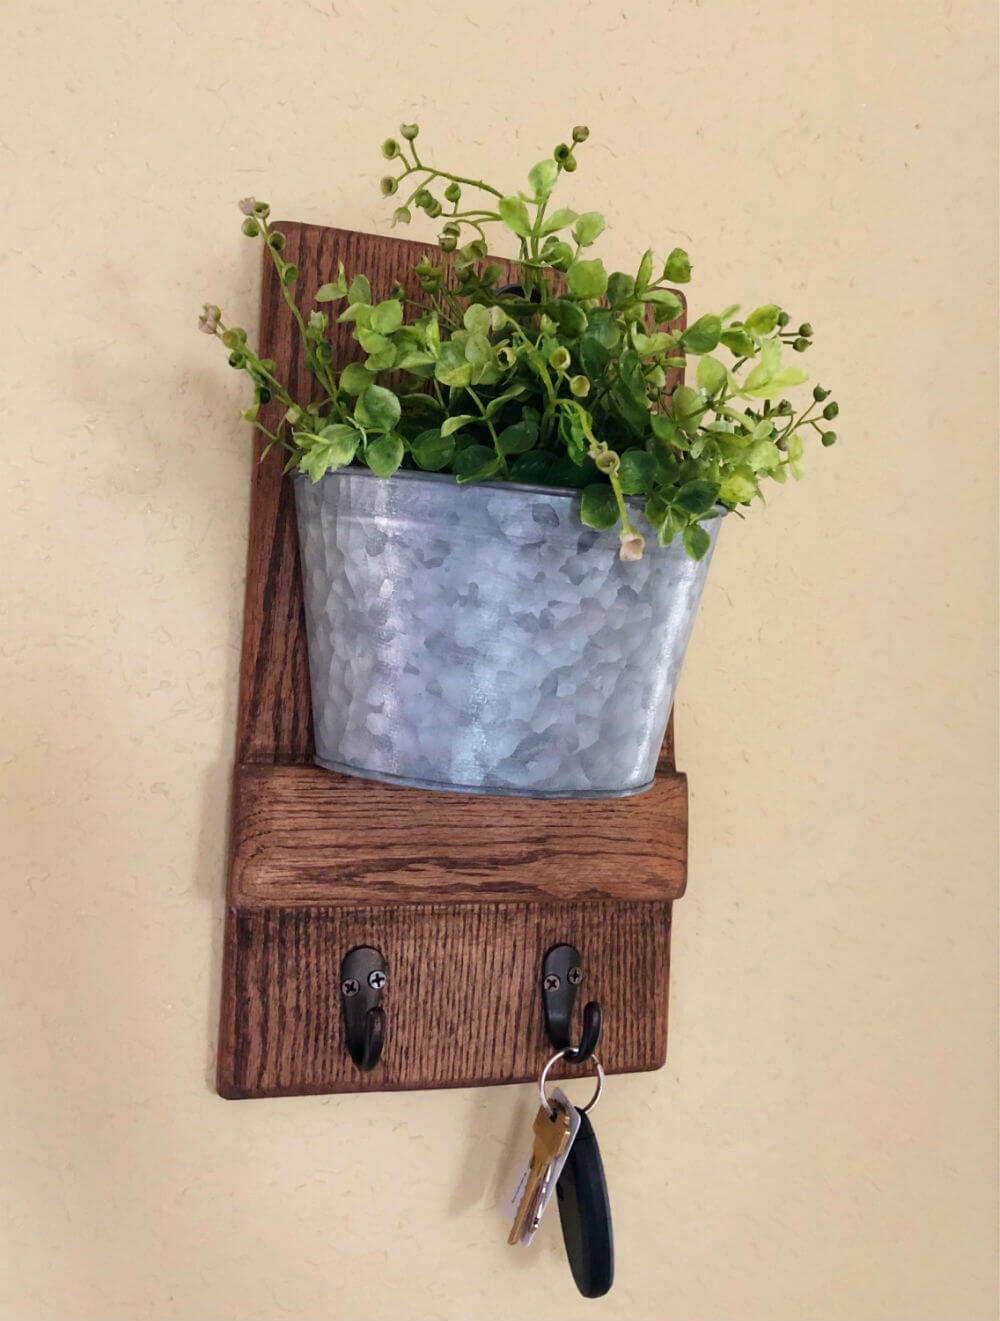 Mail and Key Wall Organizer